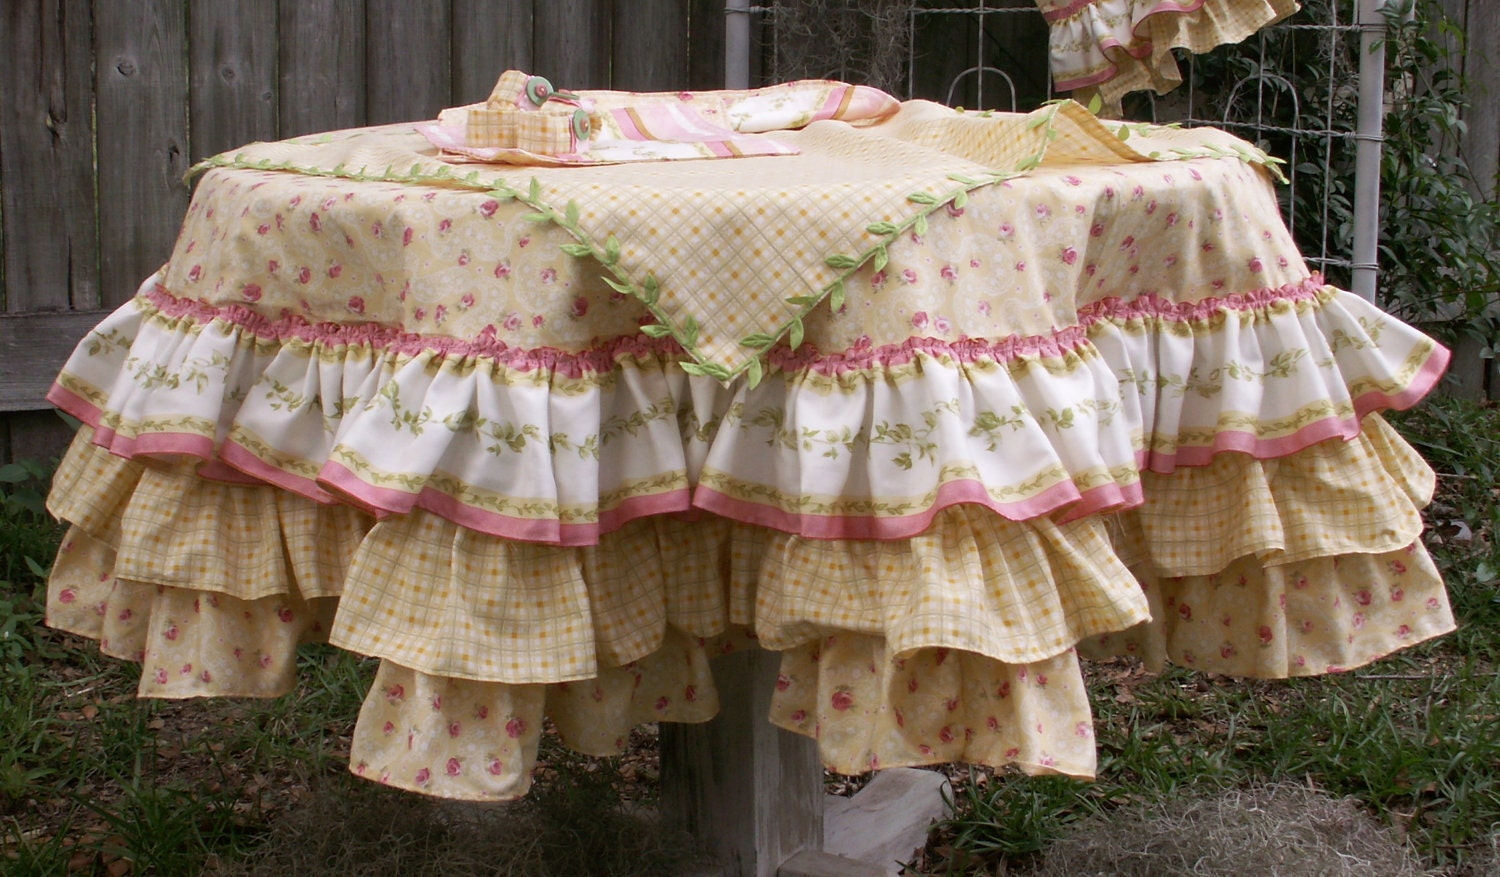 Shabby Chic Tea Party Table Set Up with Round Tablecloth and